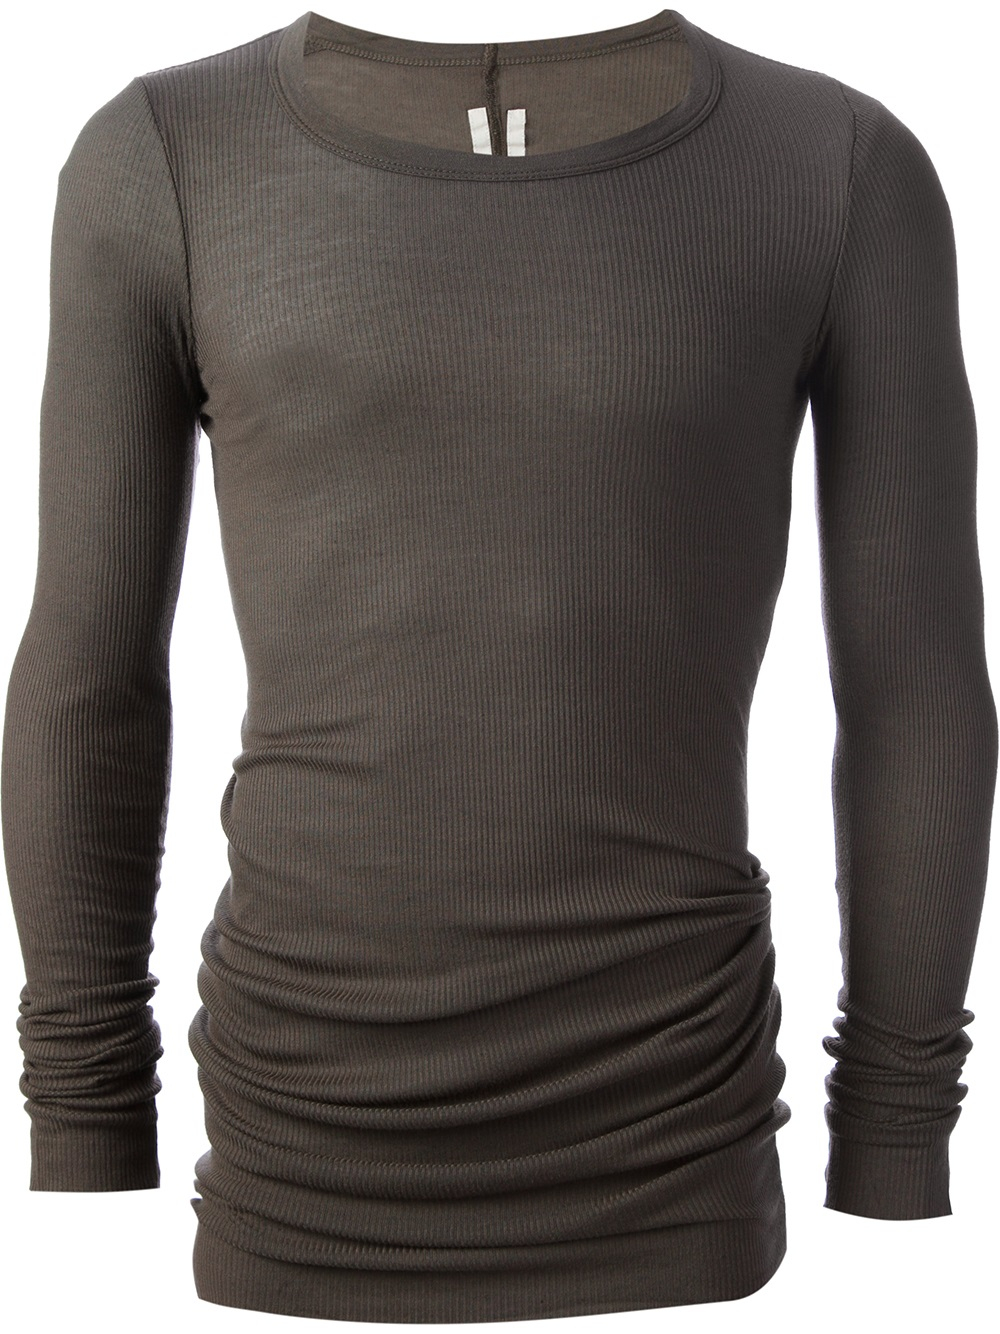 Lyst - Rick Owens Ribbed Tshirt in Gray for Men